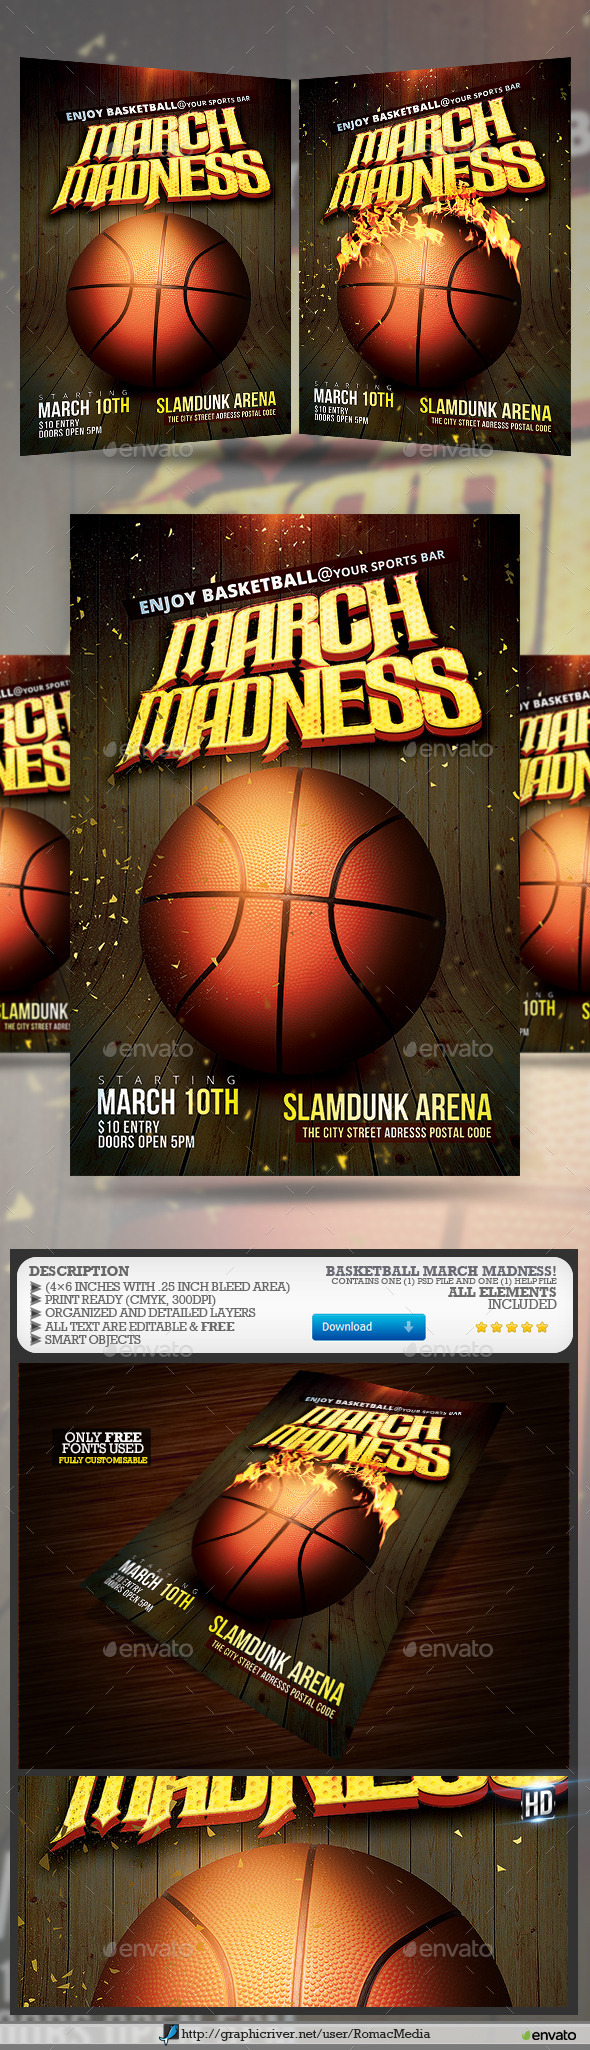 GraphicRiver Basketball March Madness Flyer 10503651